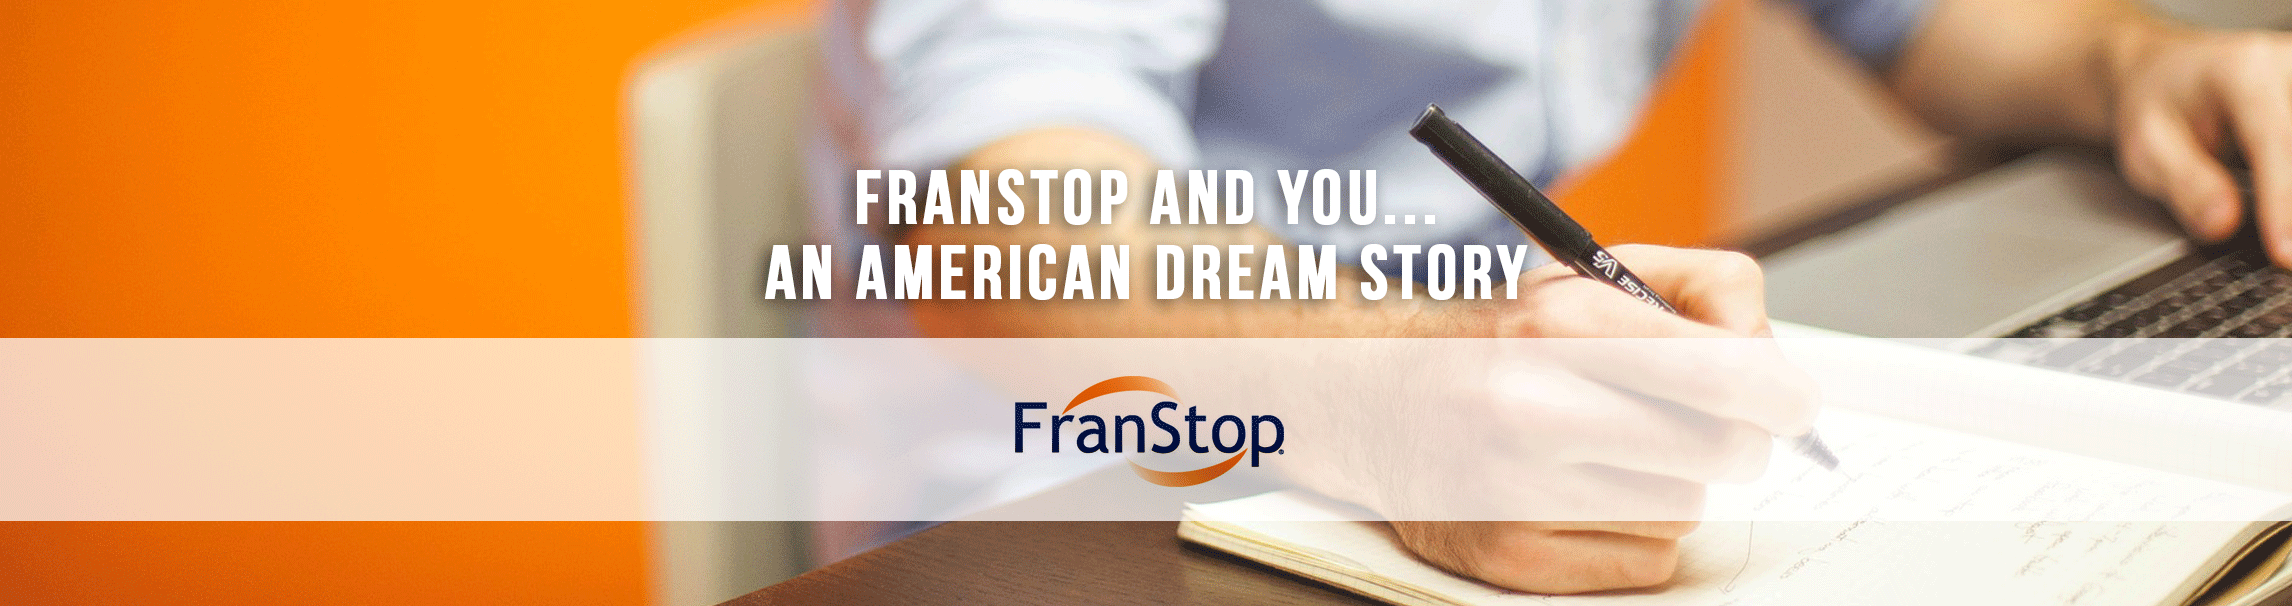 American_Dream_Search_Franchise_Business_FranStop_franchise_for_sale